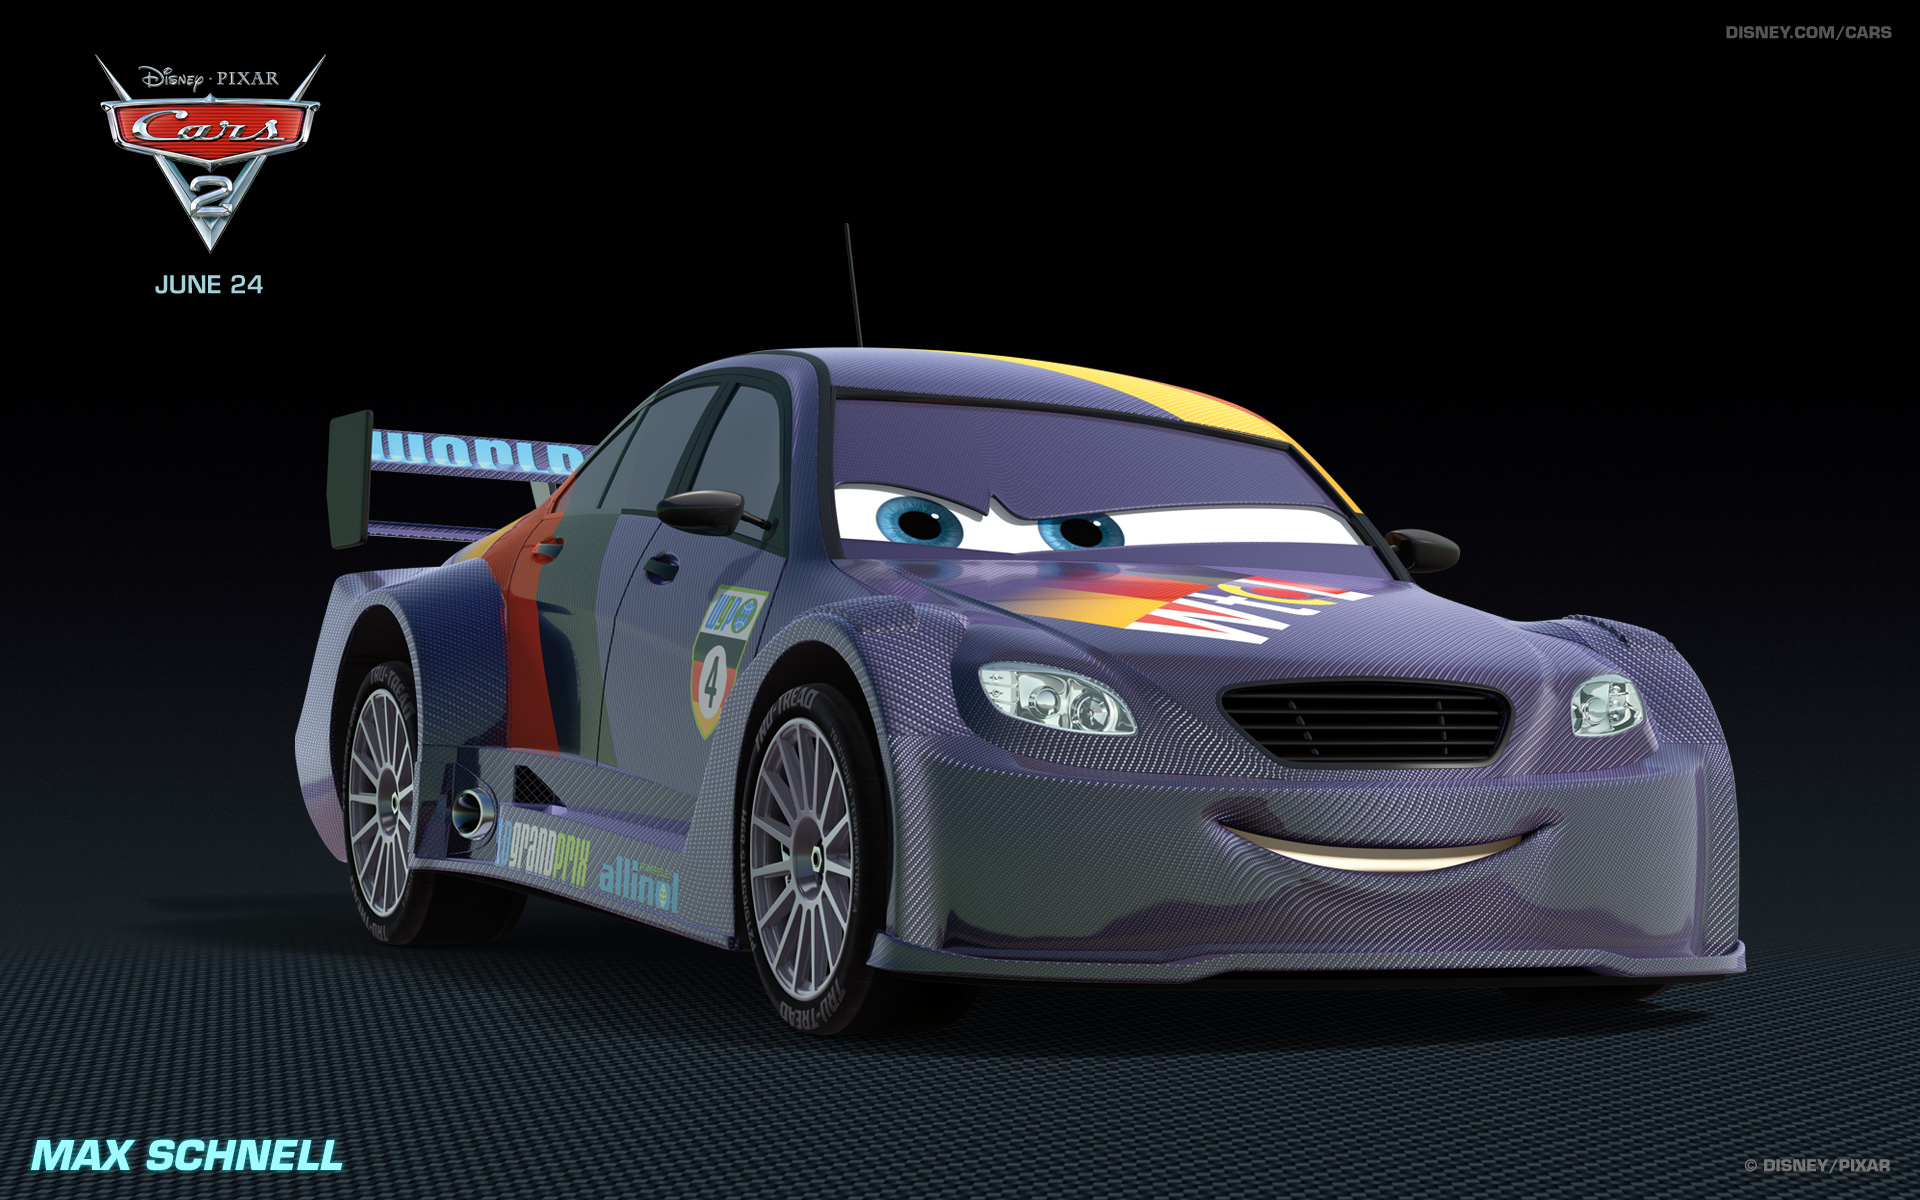 max schnell cars 2 movie characters names and pictures - Cars The Movie 2 Characters